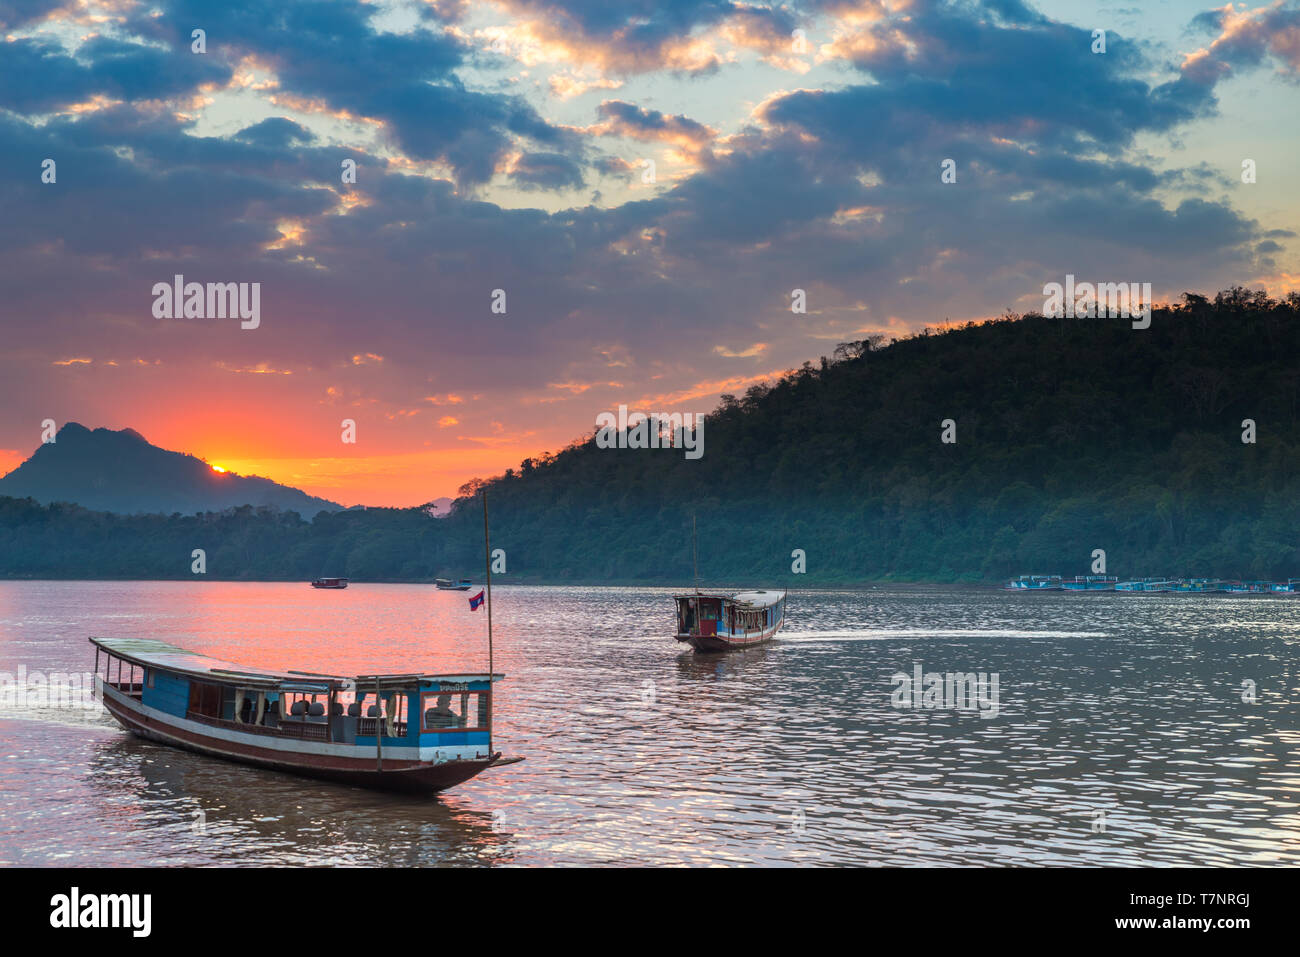 Boats on Mekong River at Luang Prabang Laos, sunset dramatic sky, famous travel destination backpacker in South East Asia Stock Photo